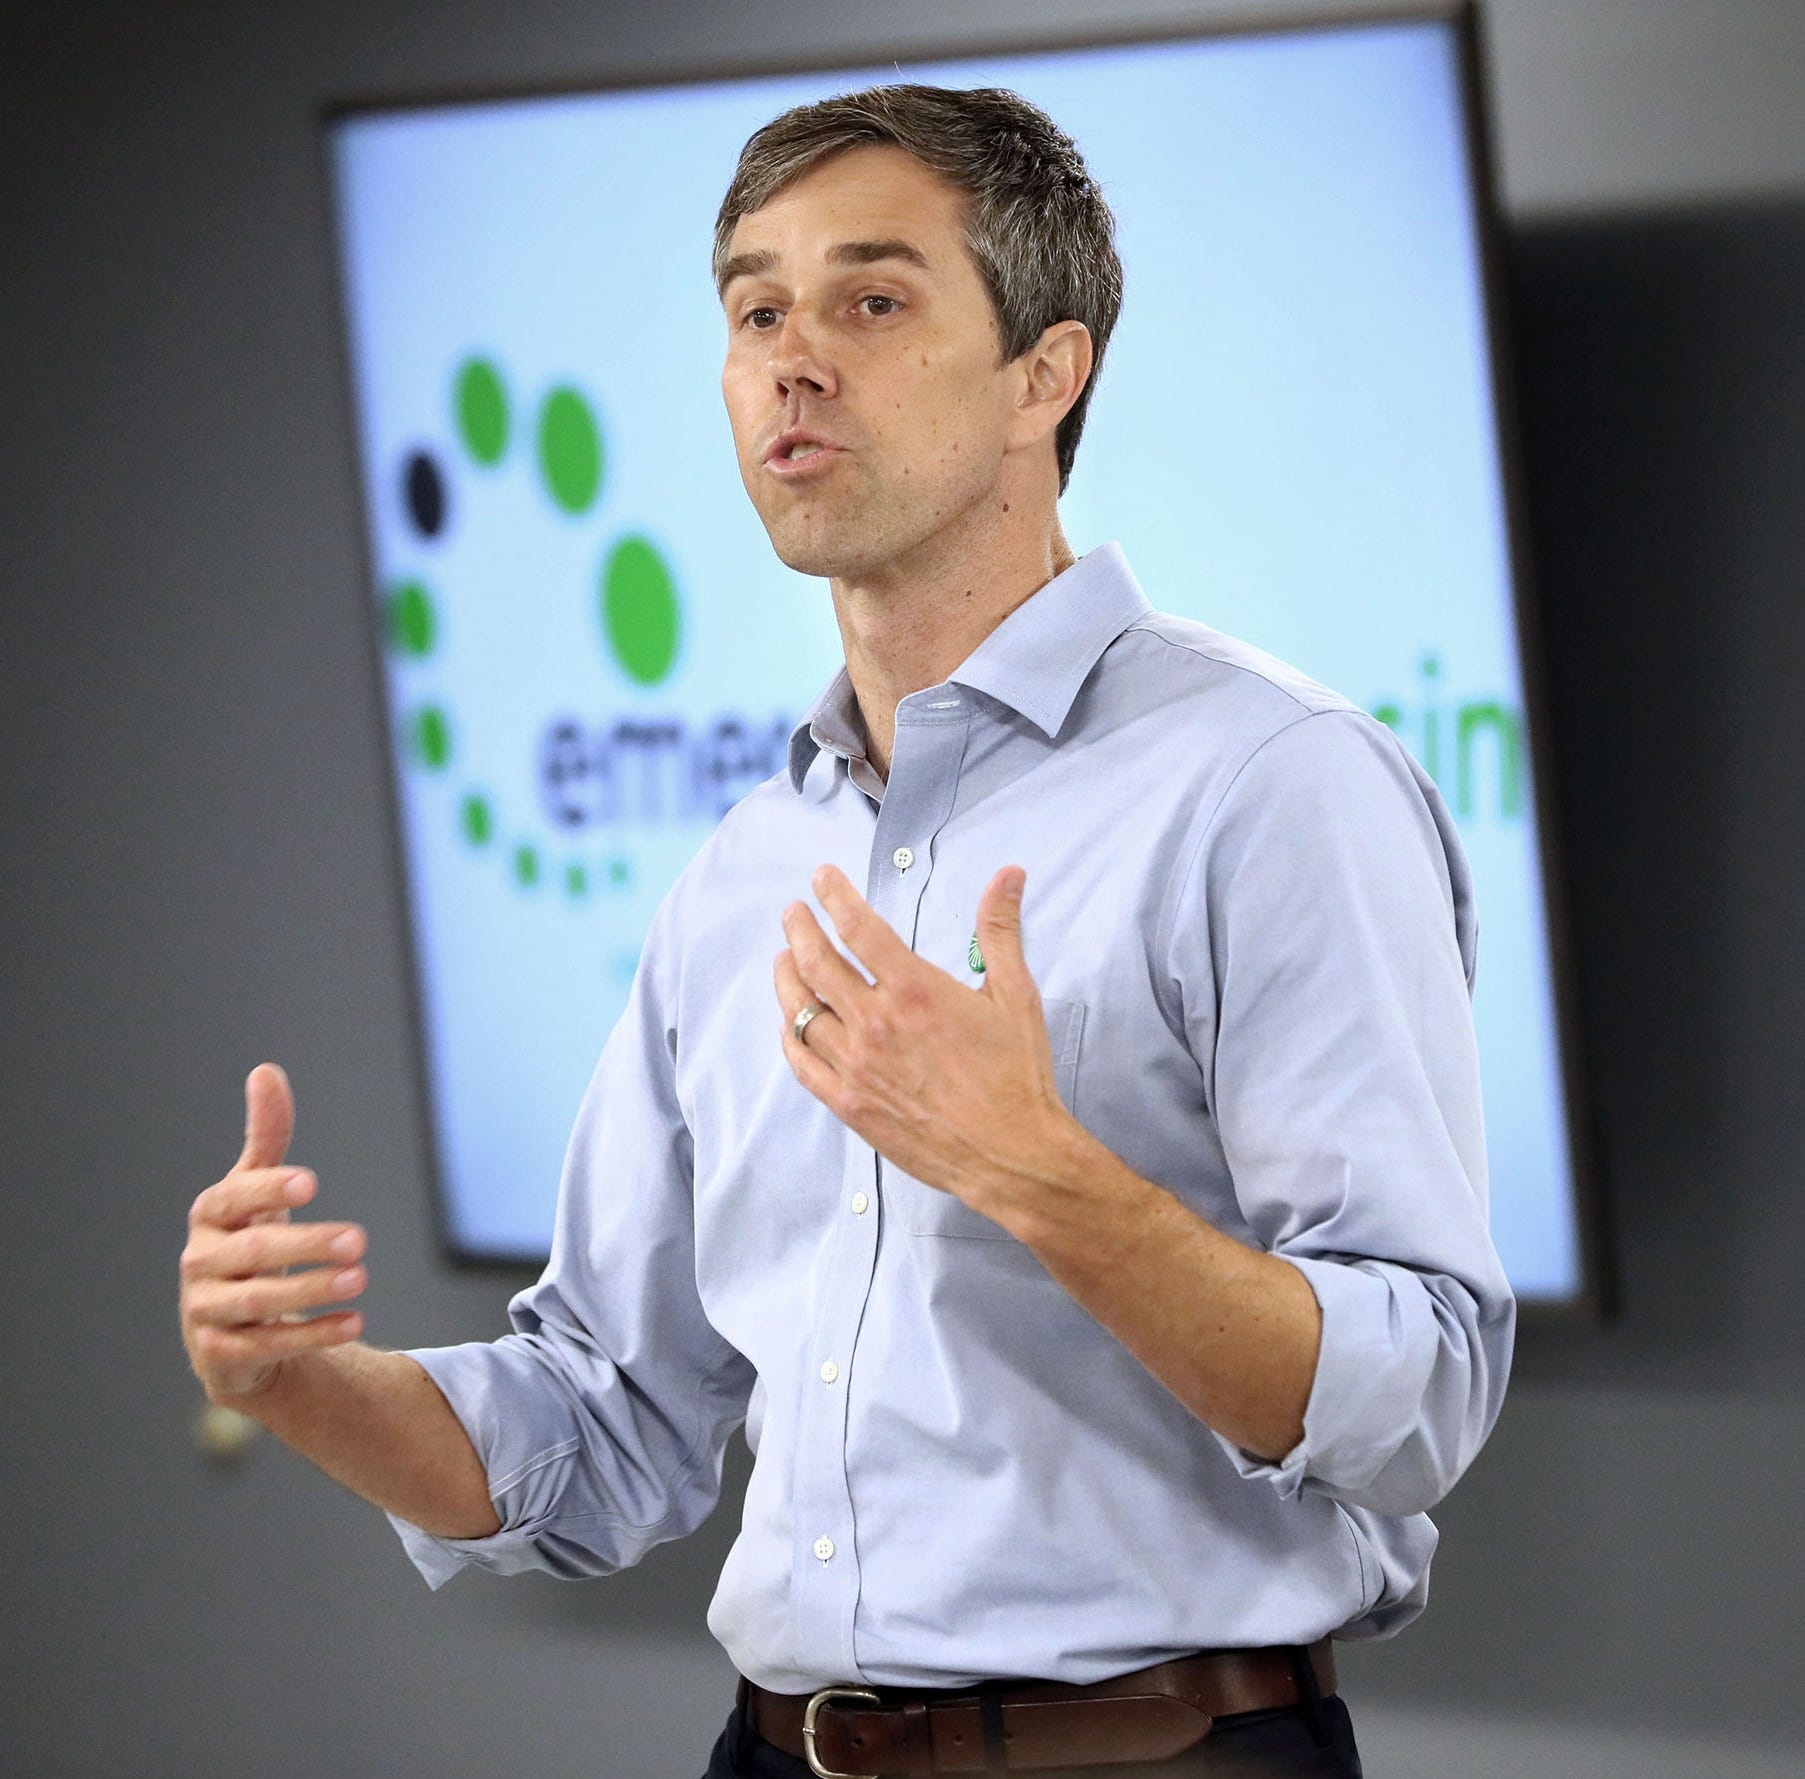 'Beto' was born to run – as whatever you want him to be